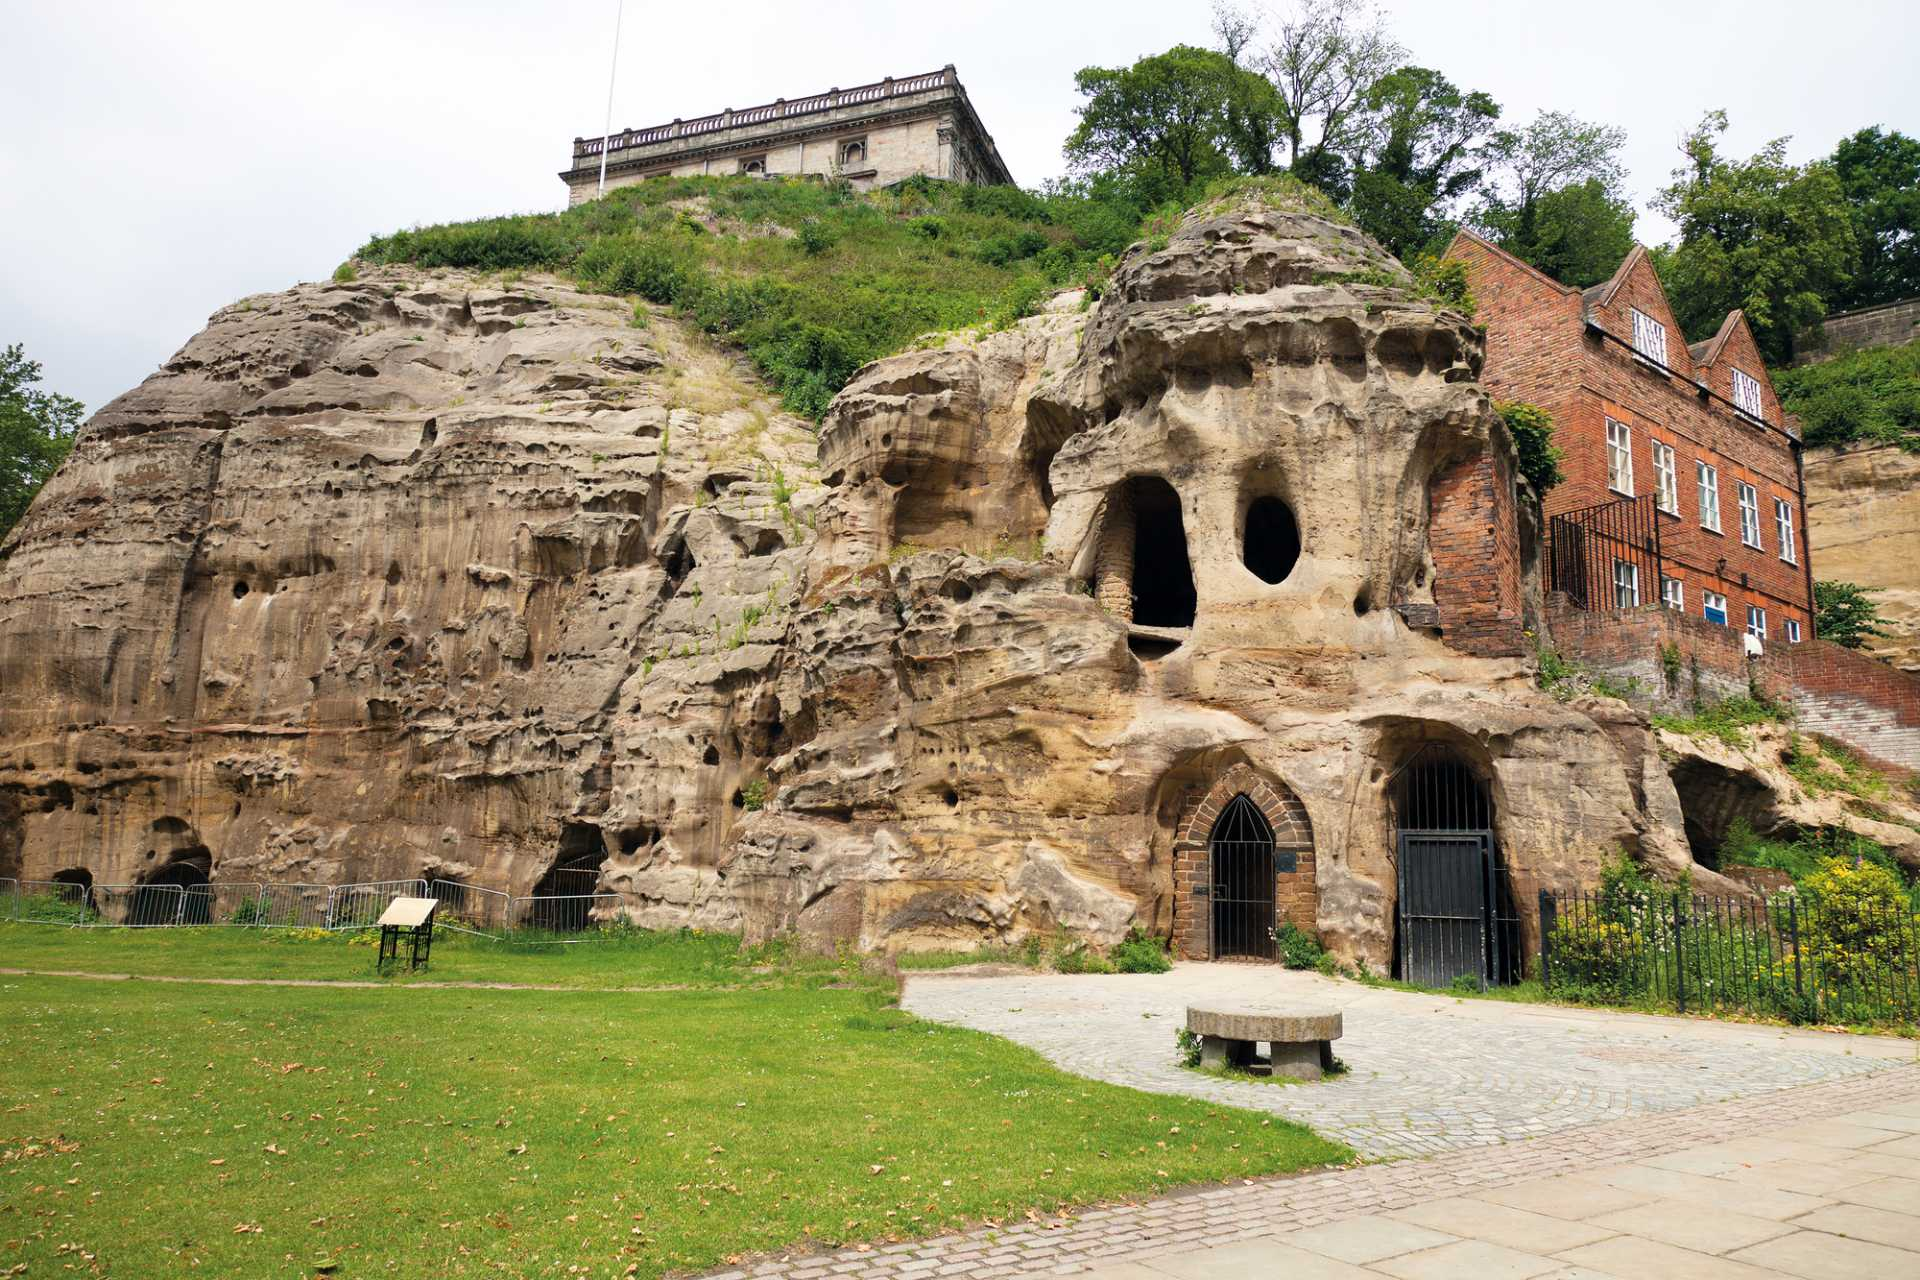 caves-inside-hillside-city-of-caves-places-to-visit-in-nottingham